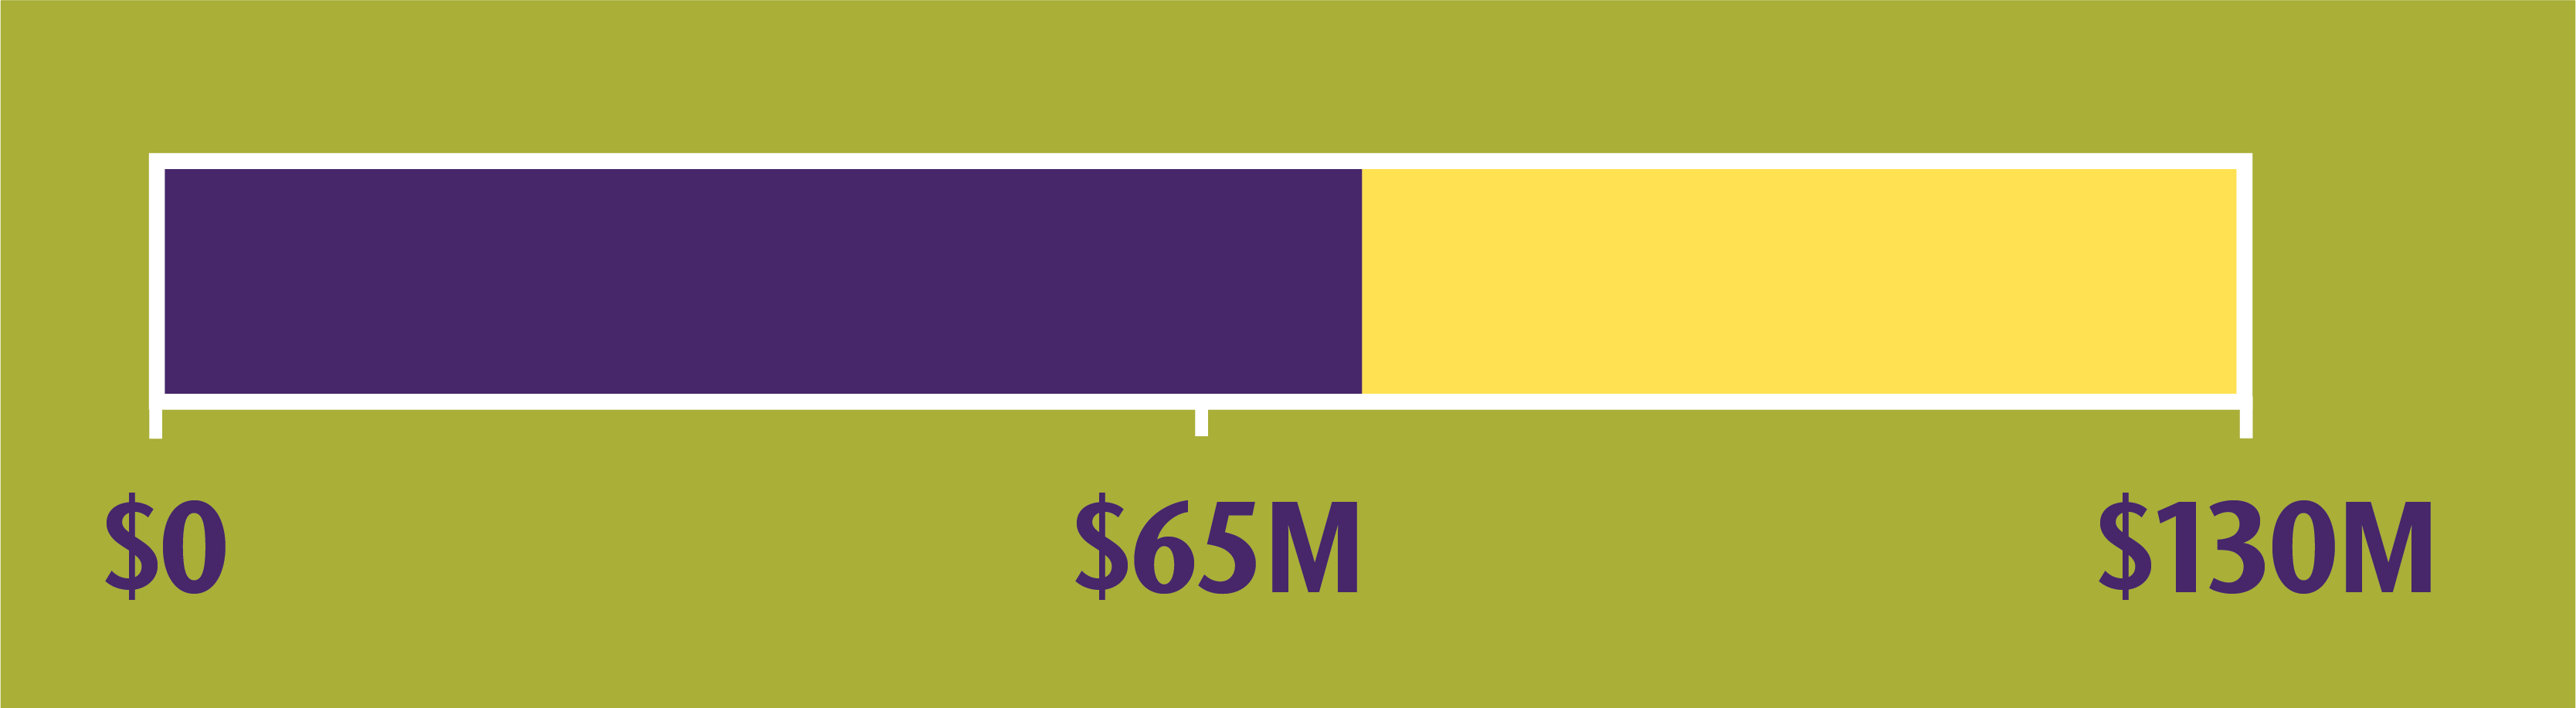 Amount of campaign goal currently reached is $74,375,000.